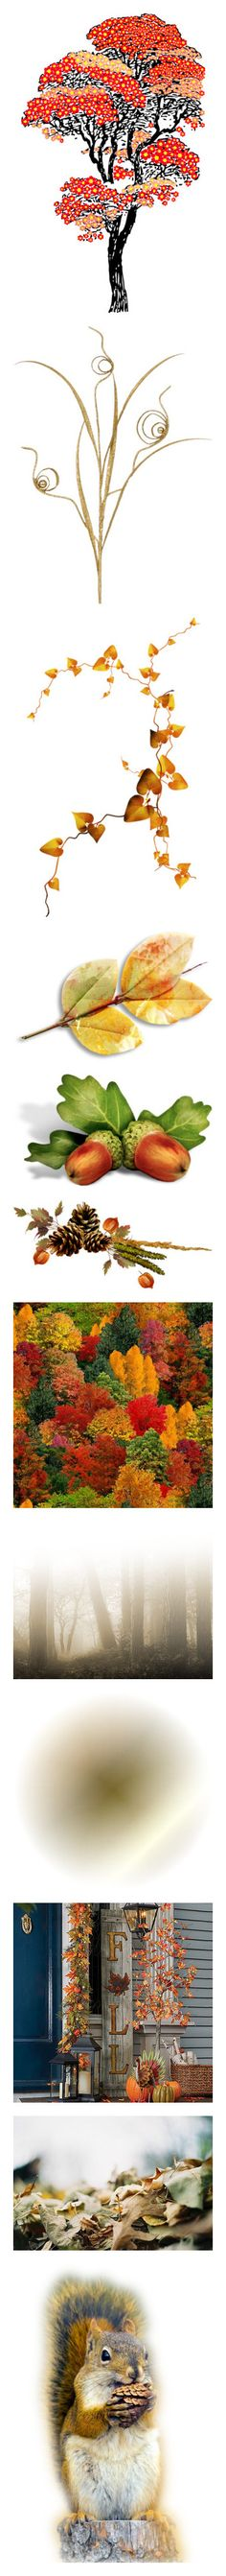 """AUTUMN'S GATHERING. ."" by julidrops ❤ liked on Polyvore featuring trees, flowers, fillers, plants, backgrounds, gold, nature, autumn, fall and leaves"